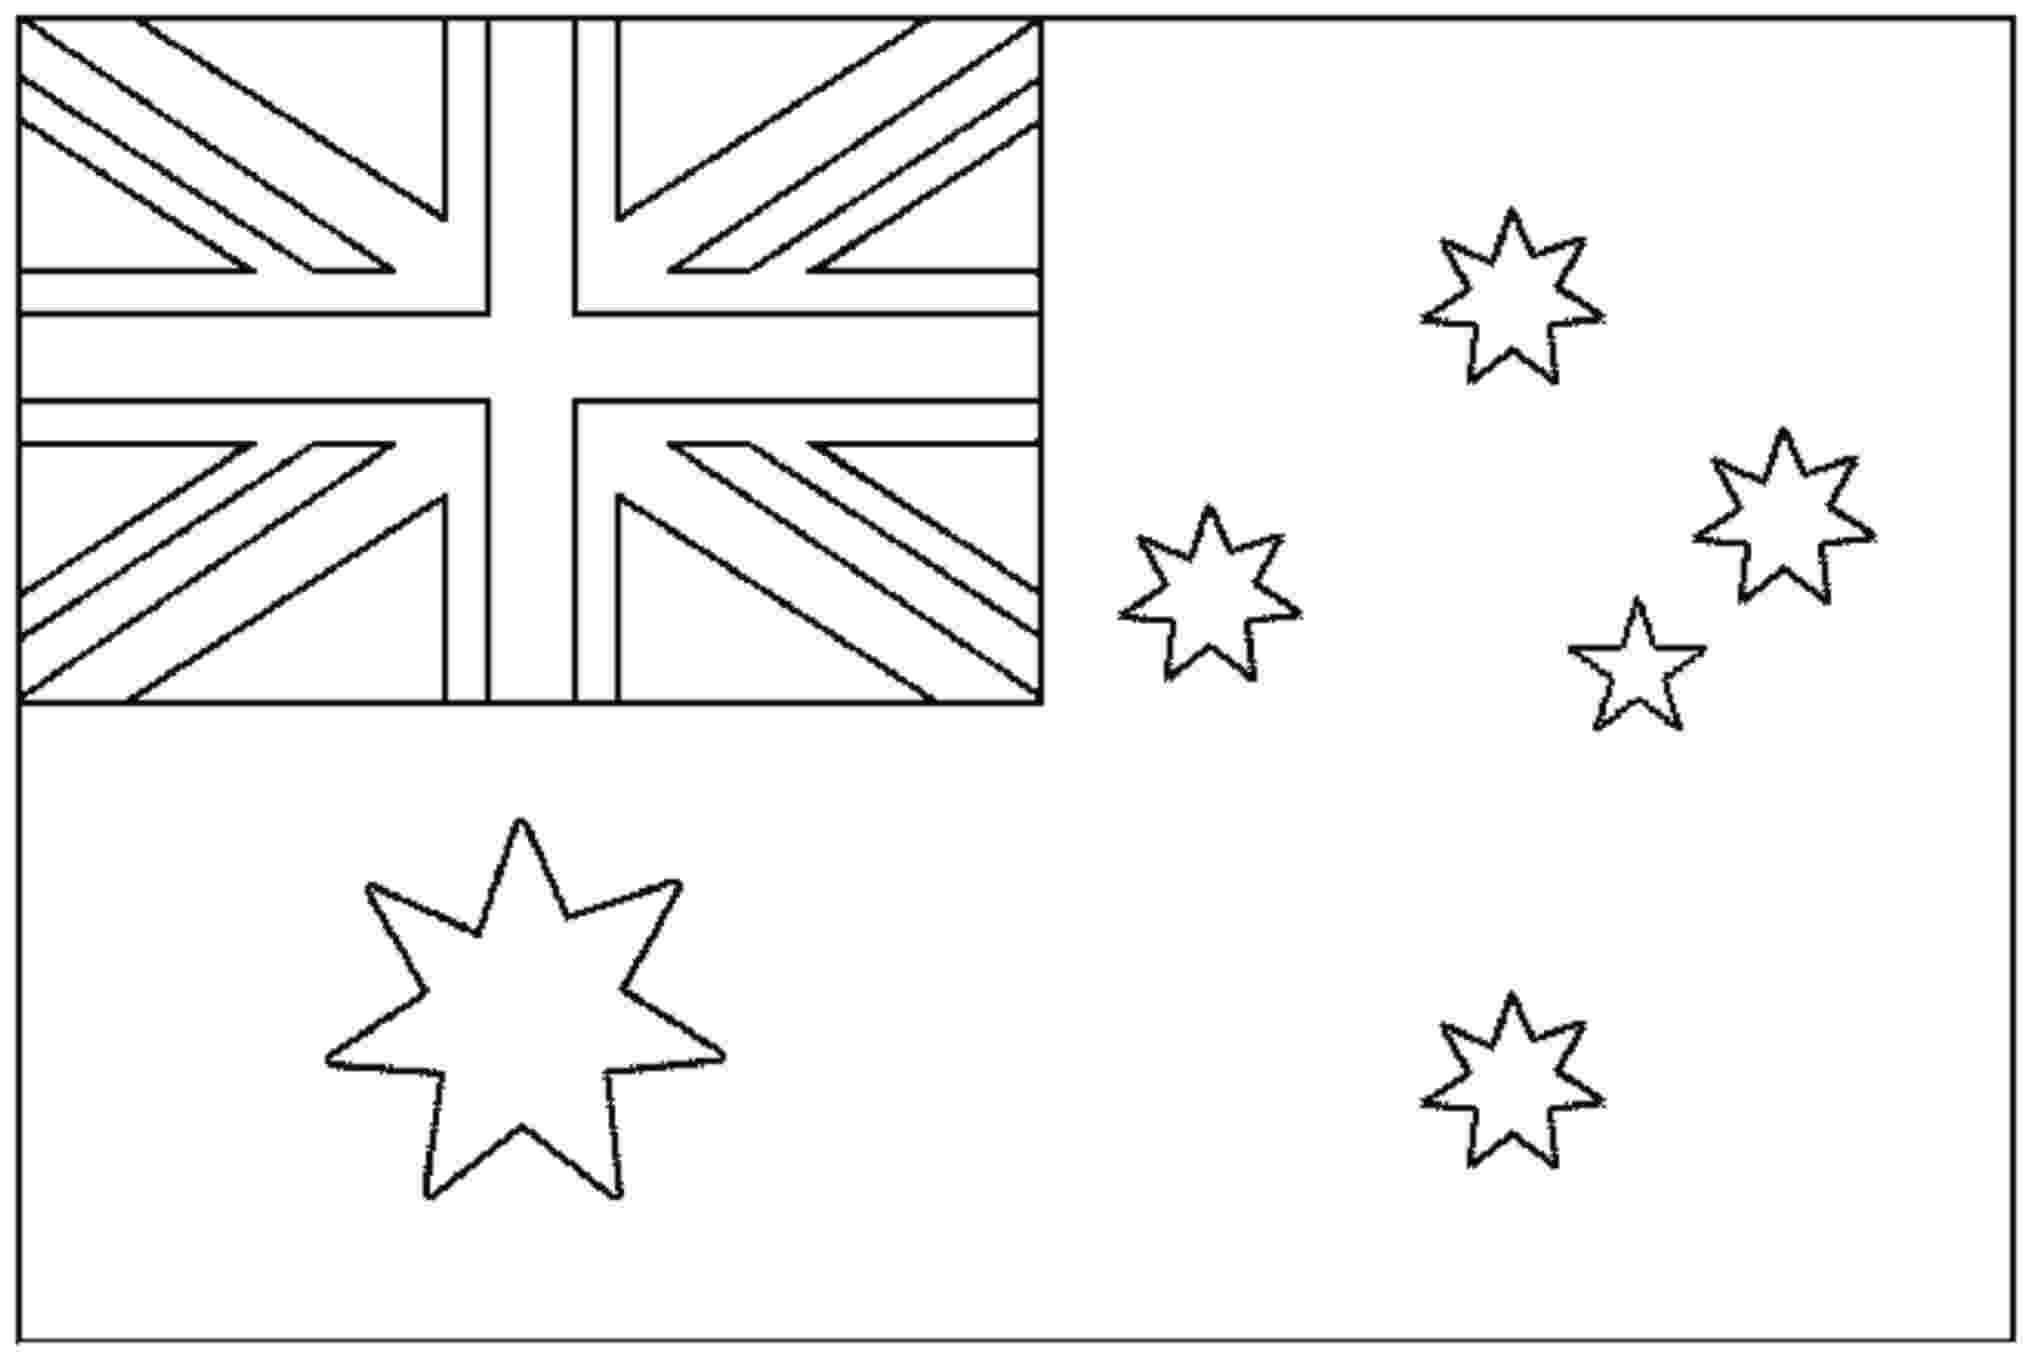 australian flag template to colour flags free to color for kids flags kids coloring pages colour template australian flag to